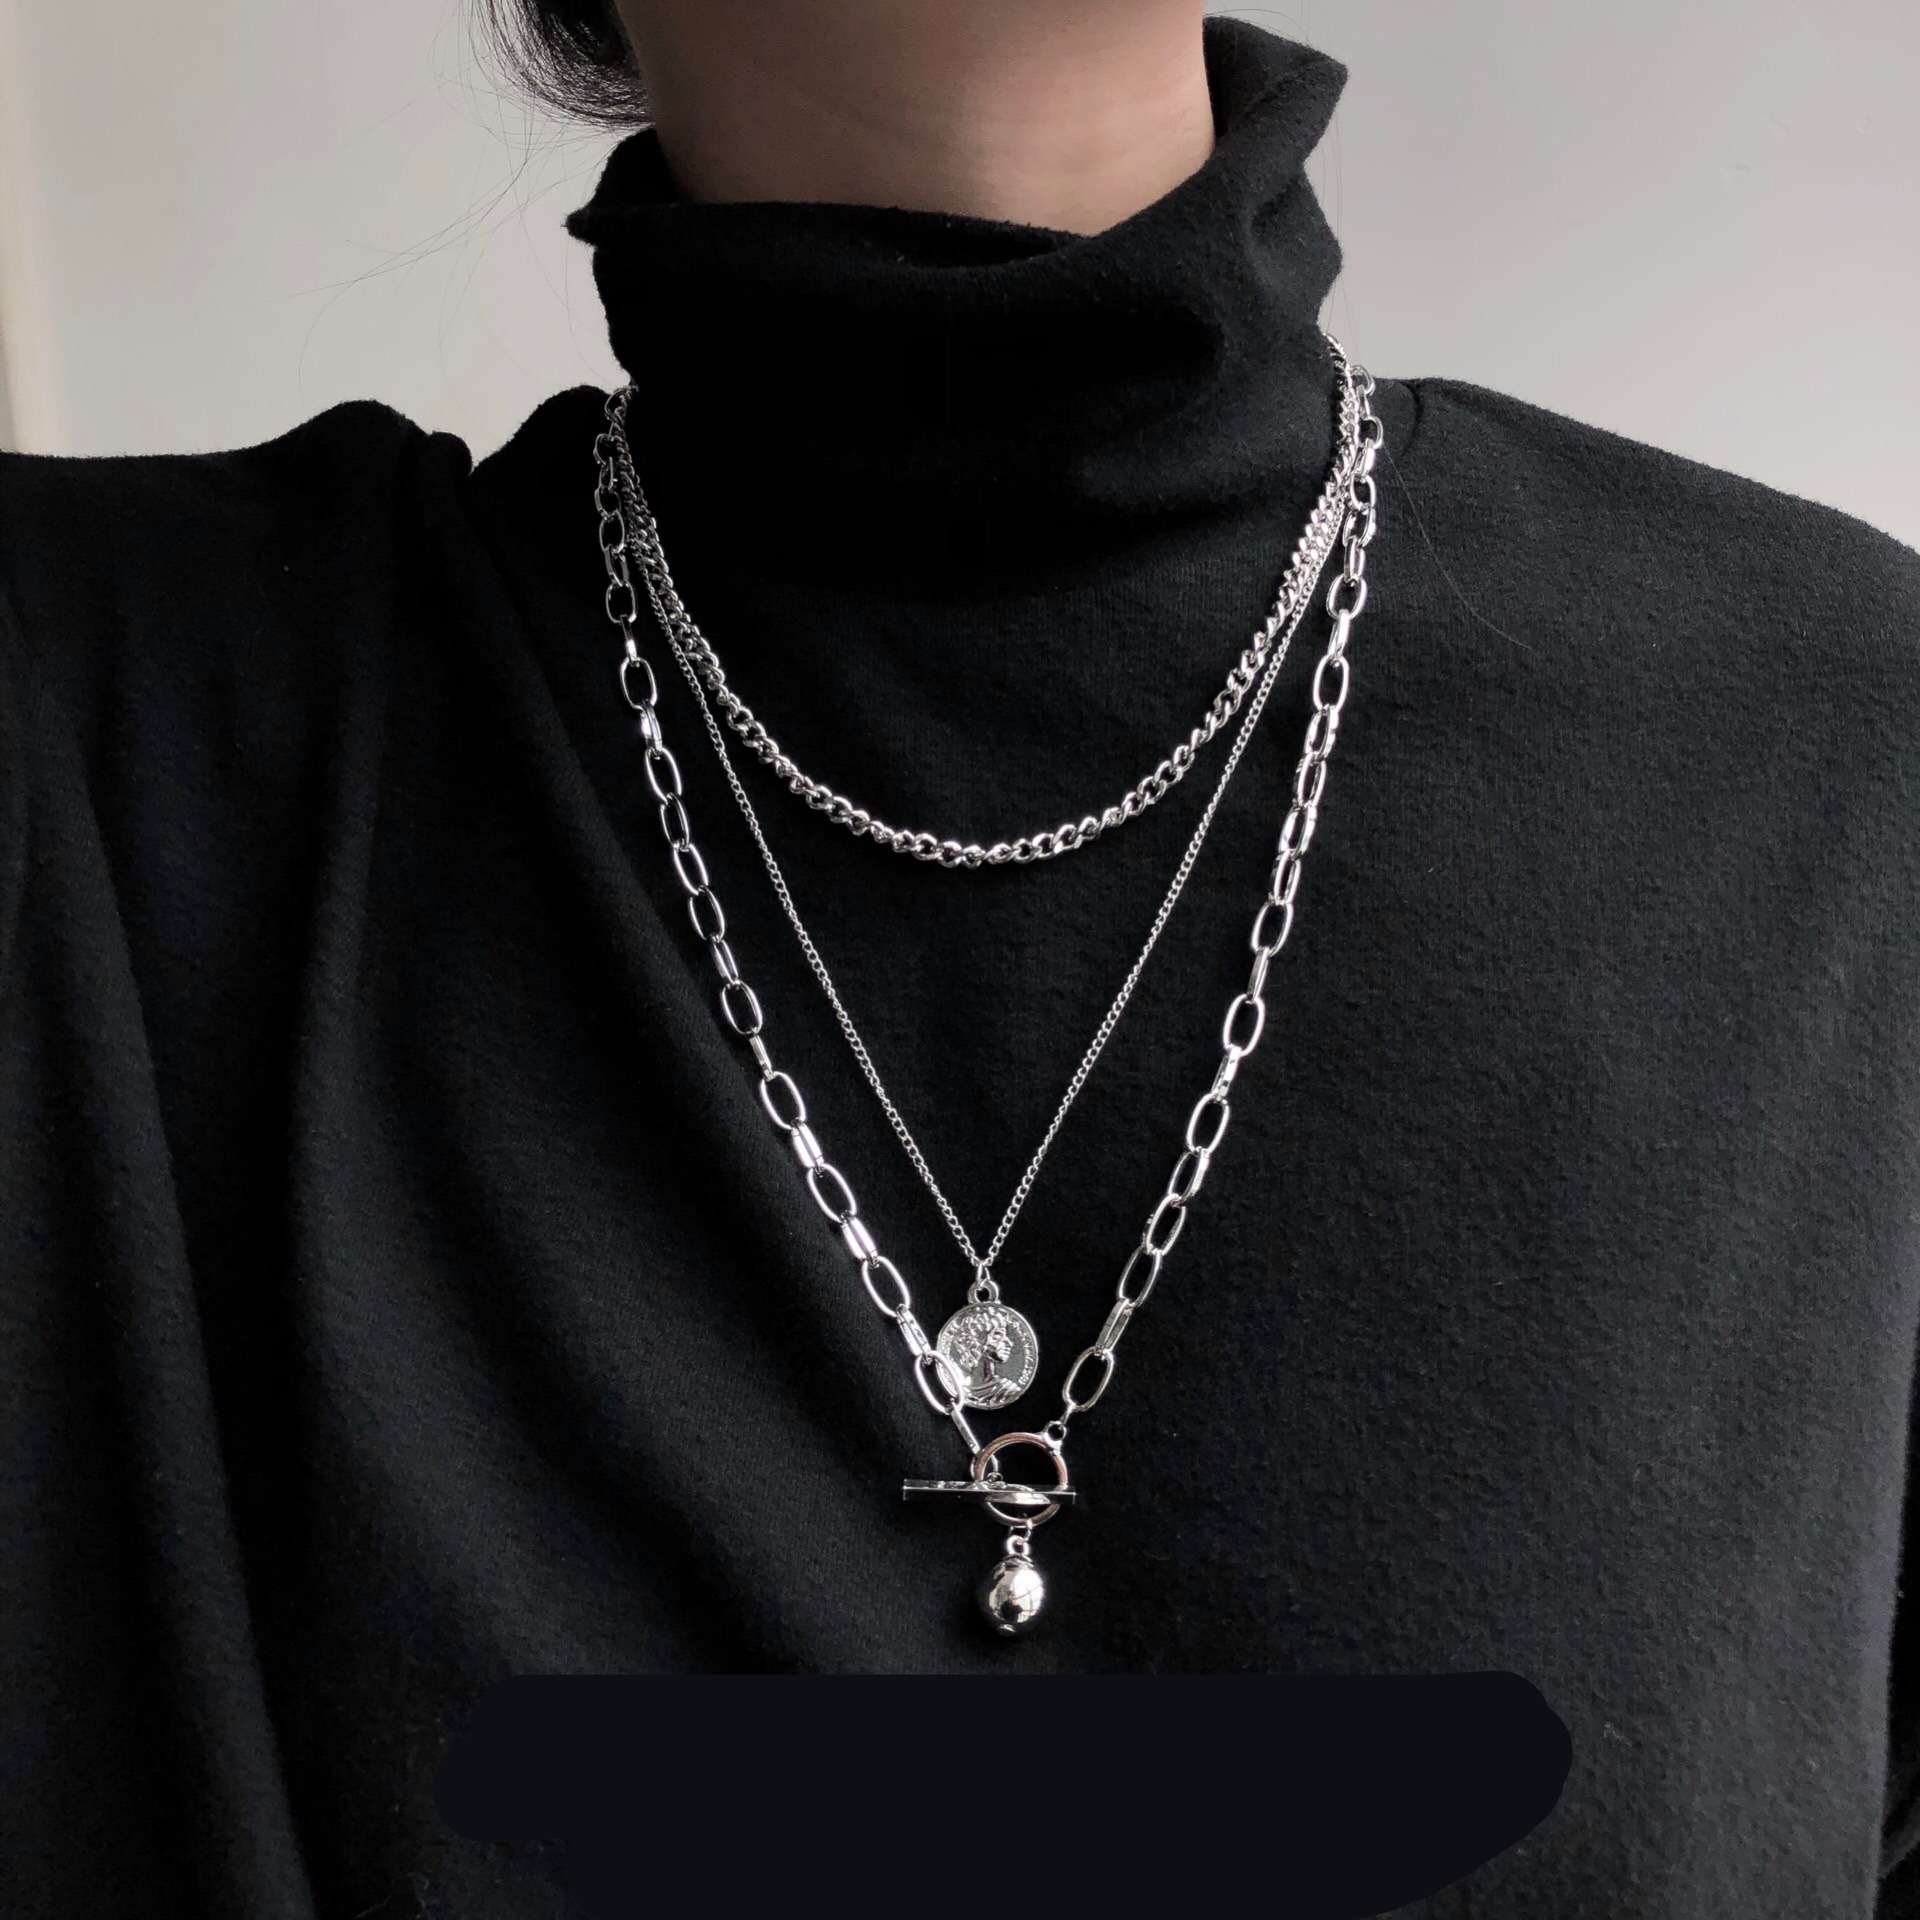 HUANZHI 2019 New Trendy Metal Ball Coin Pendant Multi-layer Punk Casual Design Long Chain Necklace For Women Men Jewelry Gifts